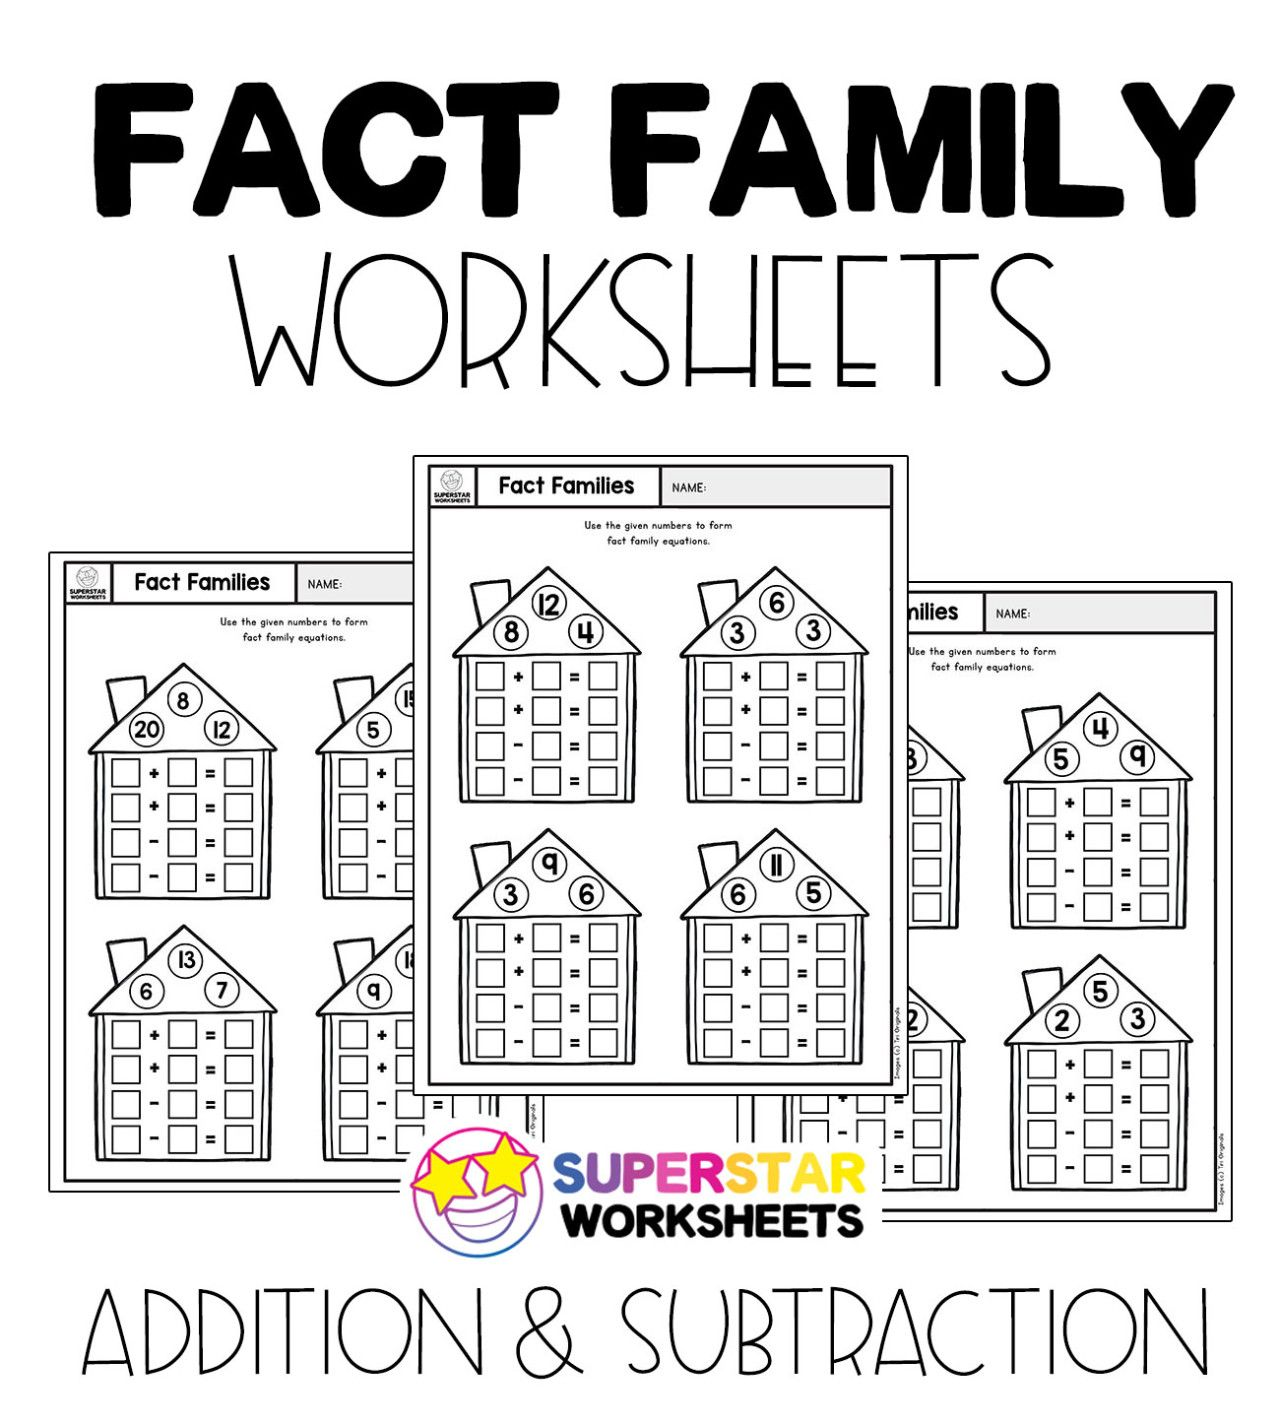 Free Fact Family Worksheets For Addition And Subtraction Equations Free Math Worksheets Fro Fact Family Worksheet Family Worksheet First Grade Math Worksheets Addition super teacher worksheets